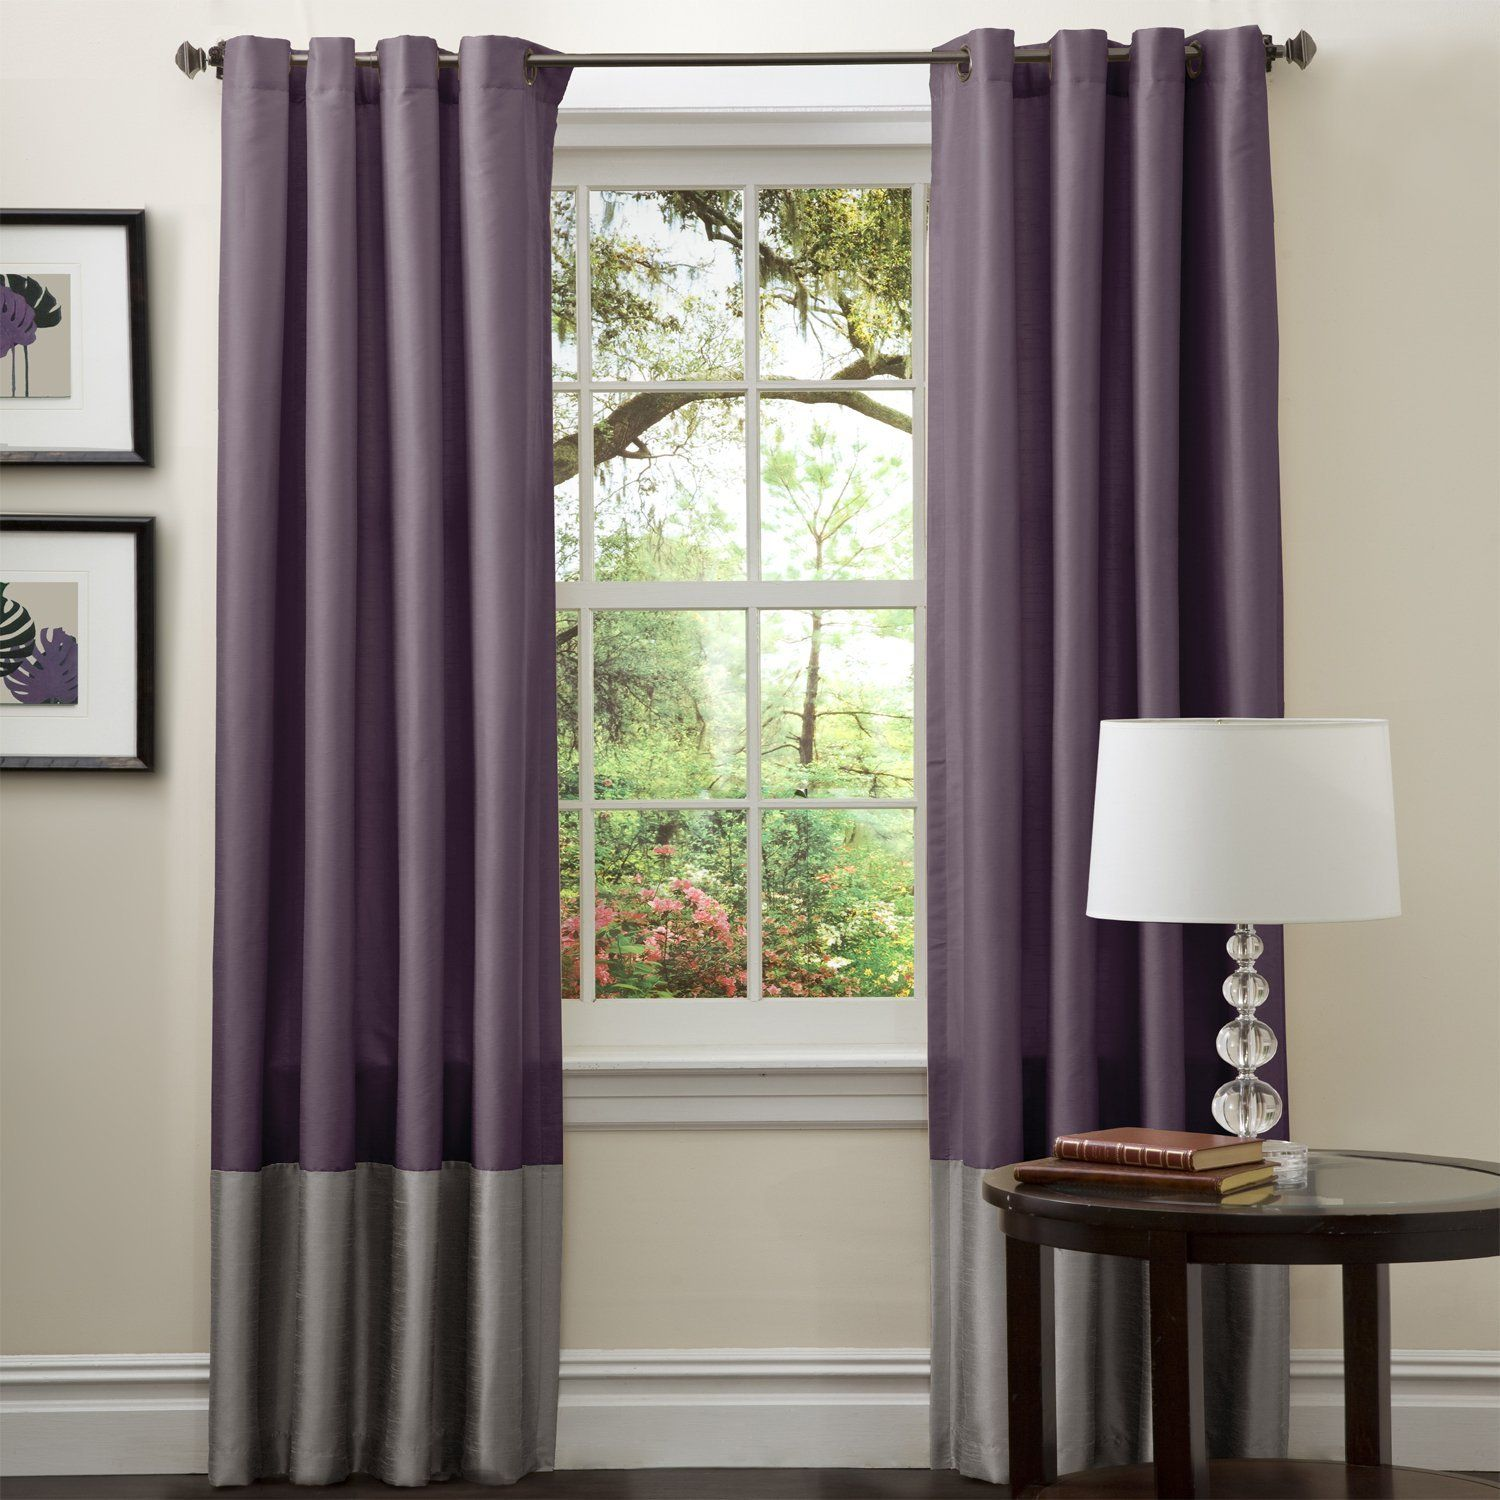 inch dainty curtains shades window set com dp amazon panels kitchen home purple blue curtain by pocket panel rod